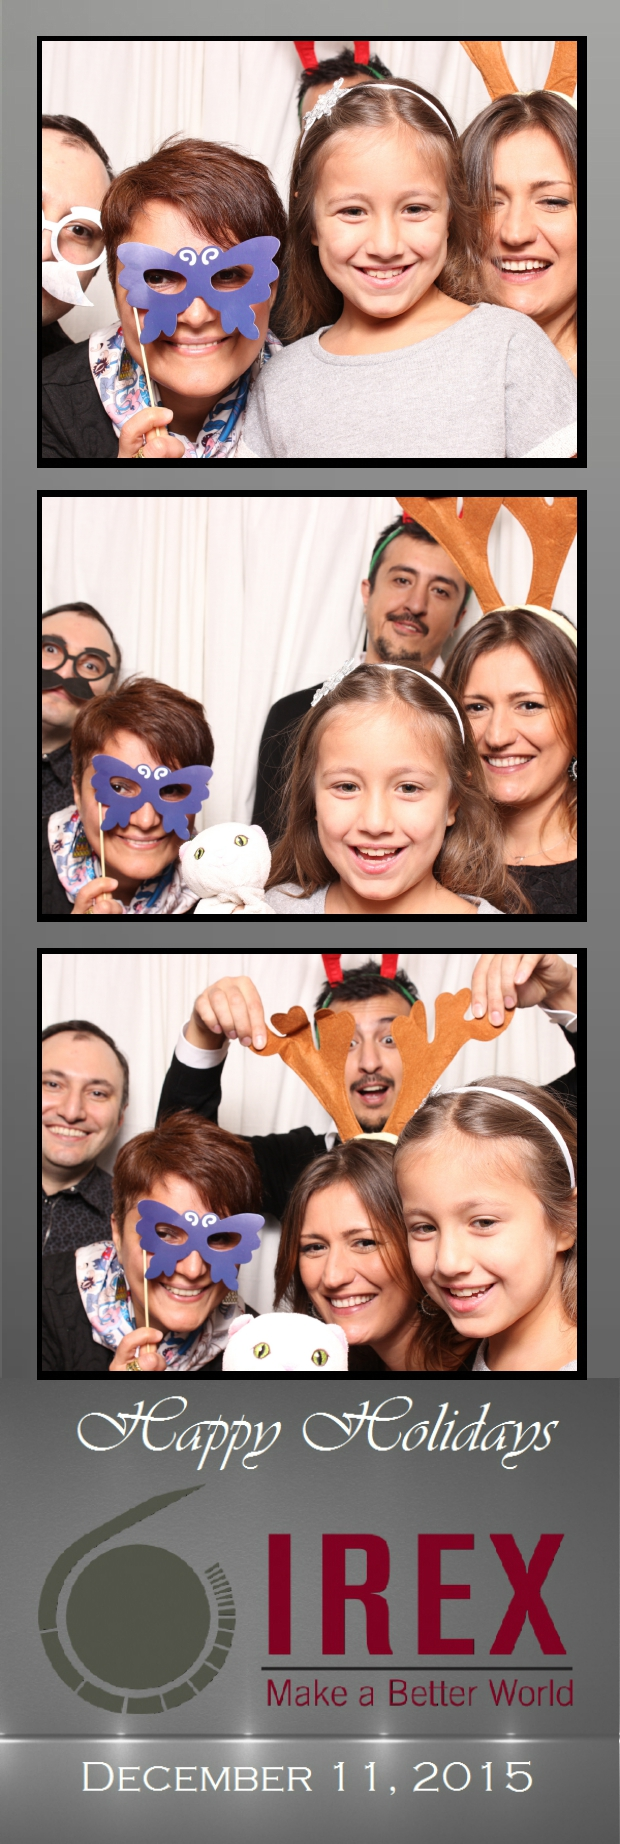 Guest House Events Photo Booth Strips IREX (40).jpg